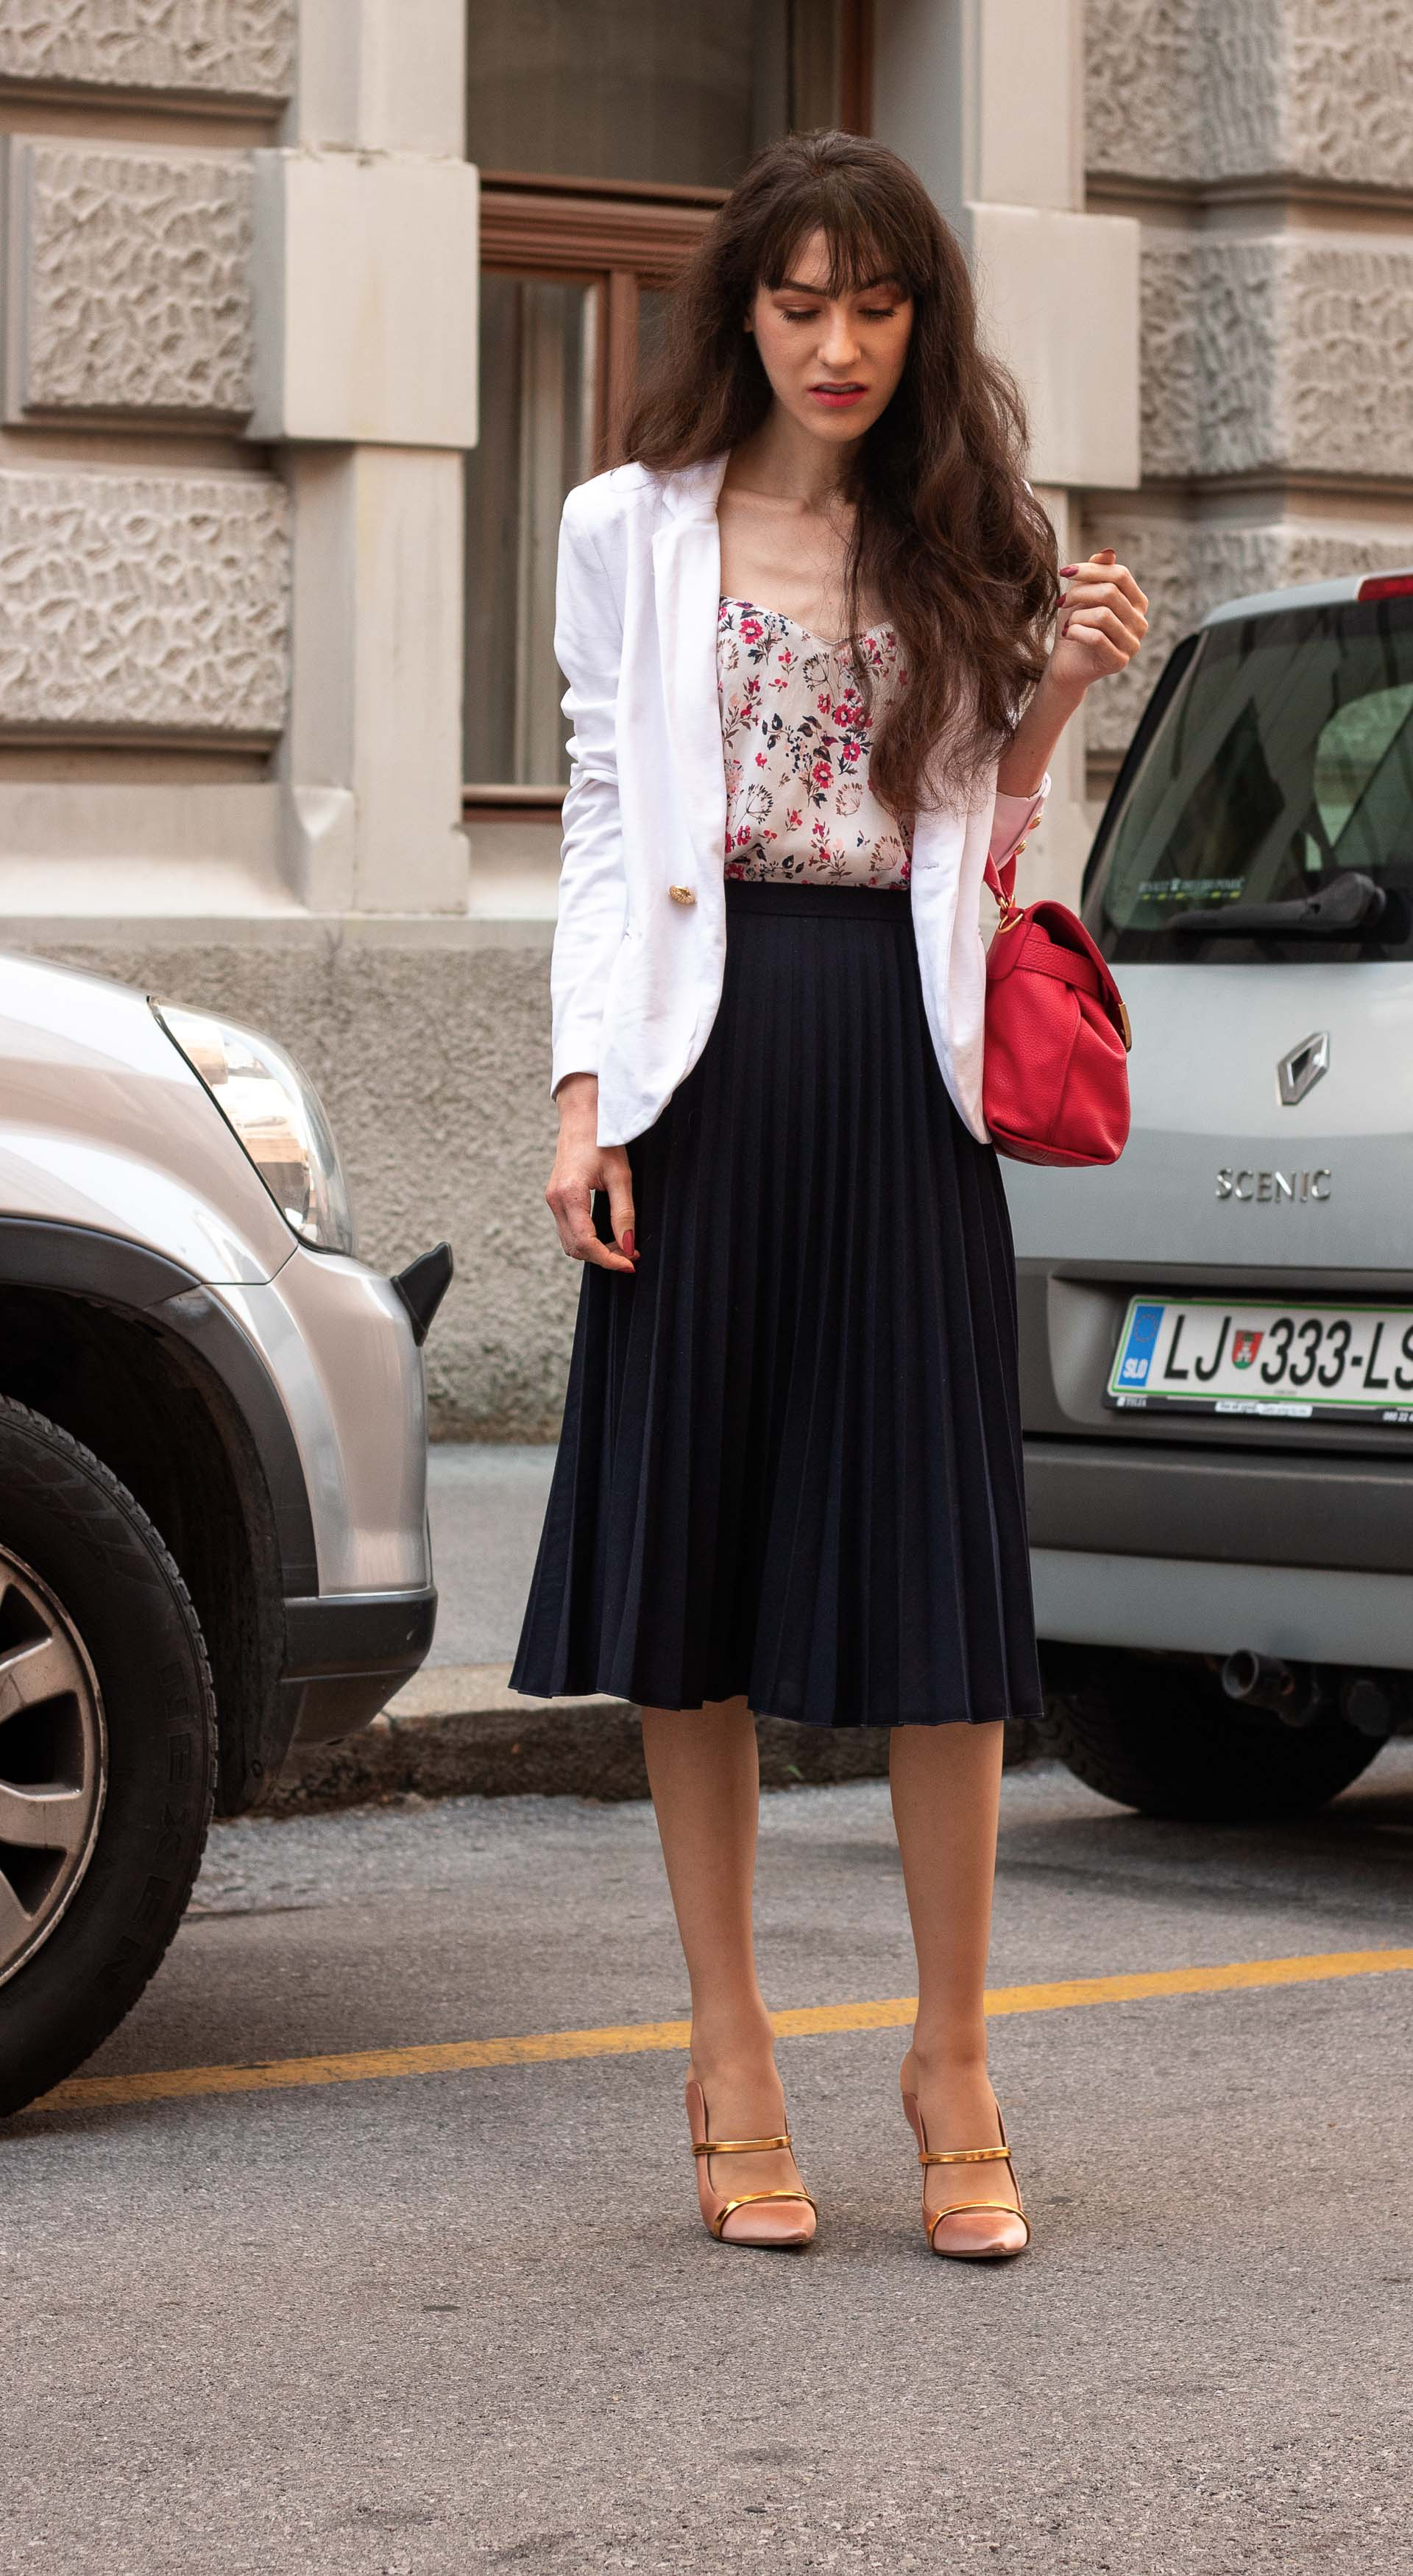 IT Girl Fashion Blogger Veronika Lipar of Brunette from Wall Street wearing white blazer pleated midi skirt camisole pink top handle bag Malone Souliers mules going to work in summer